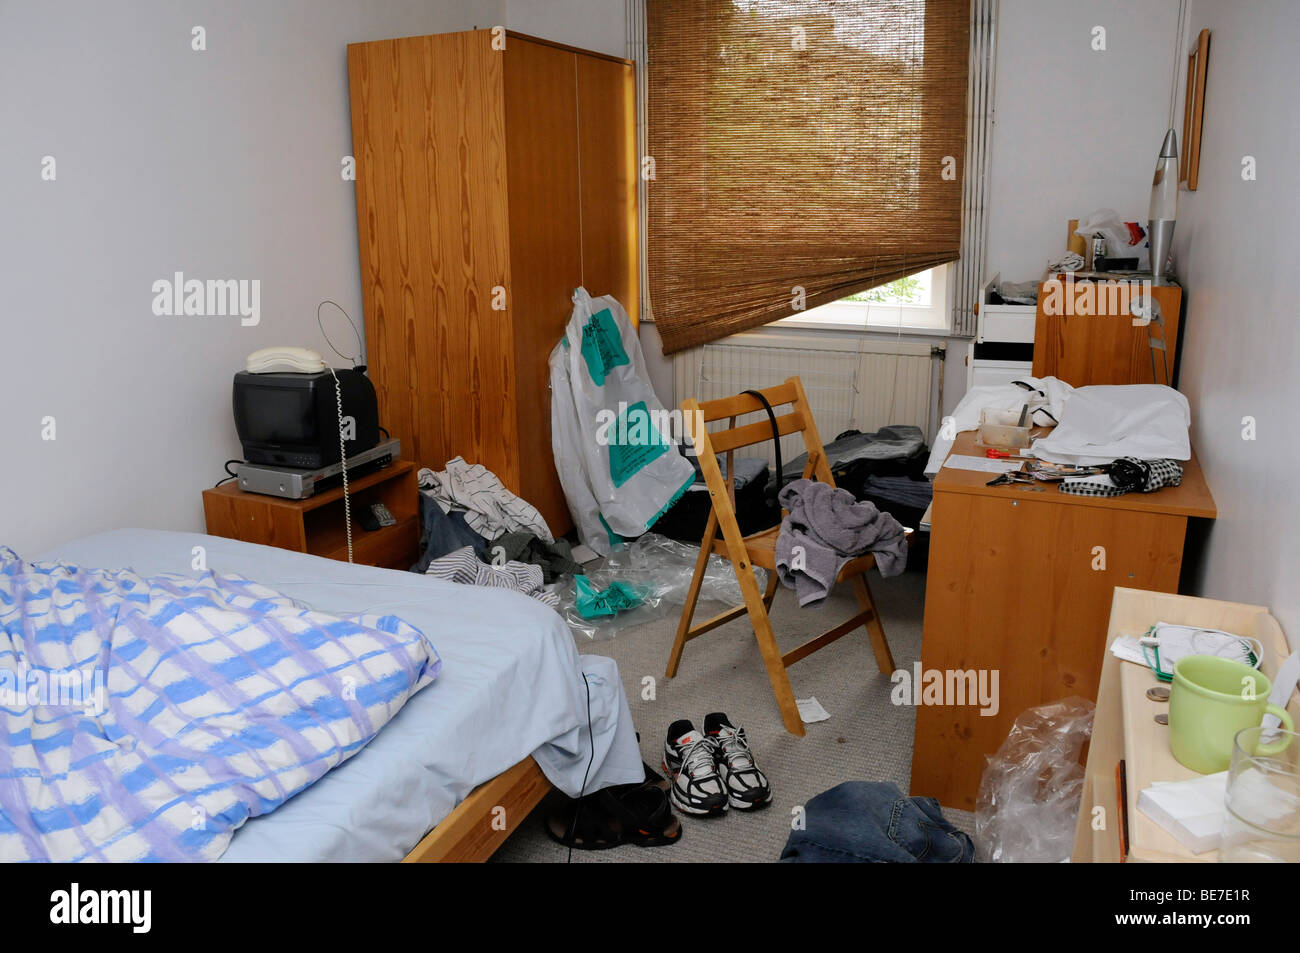 Untidy Cluttered Bedroom In Disarray Messy Bed Boys Room